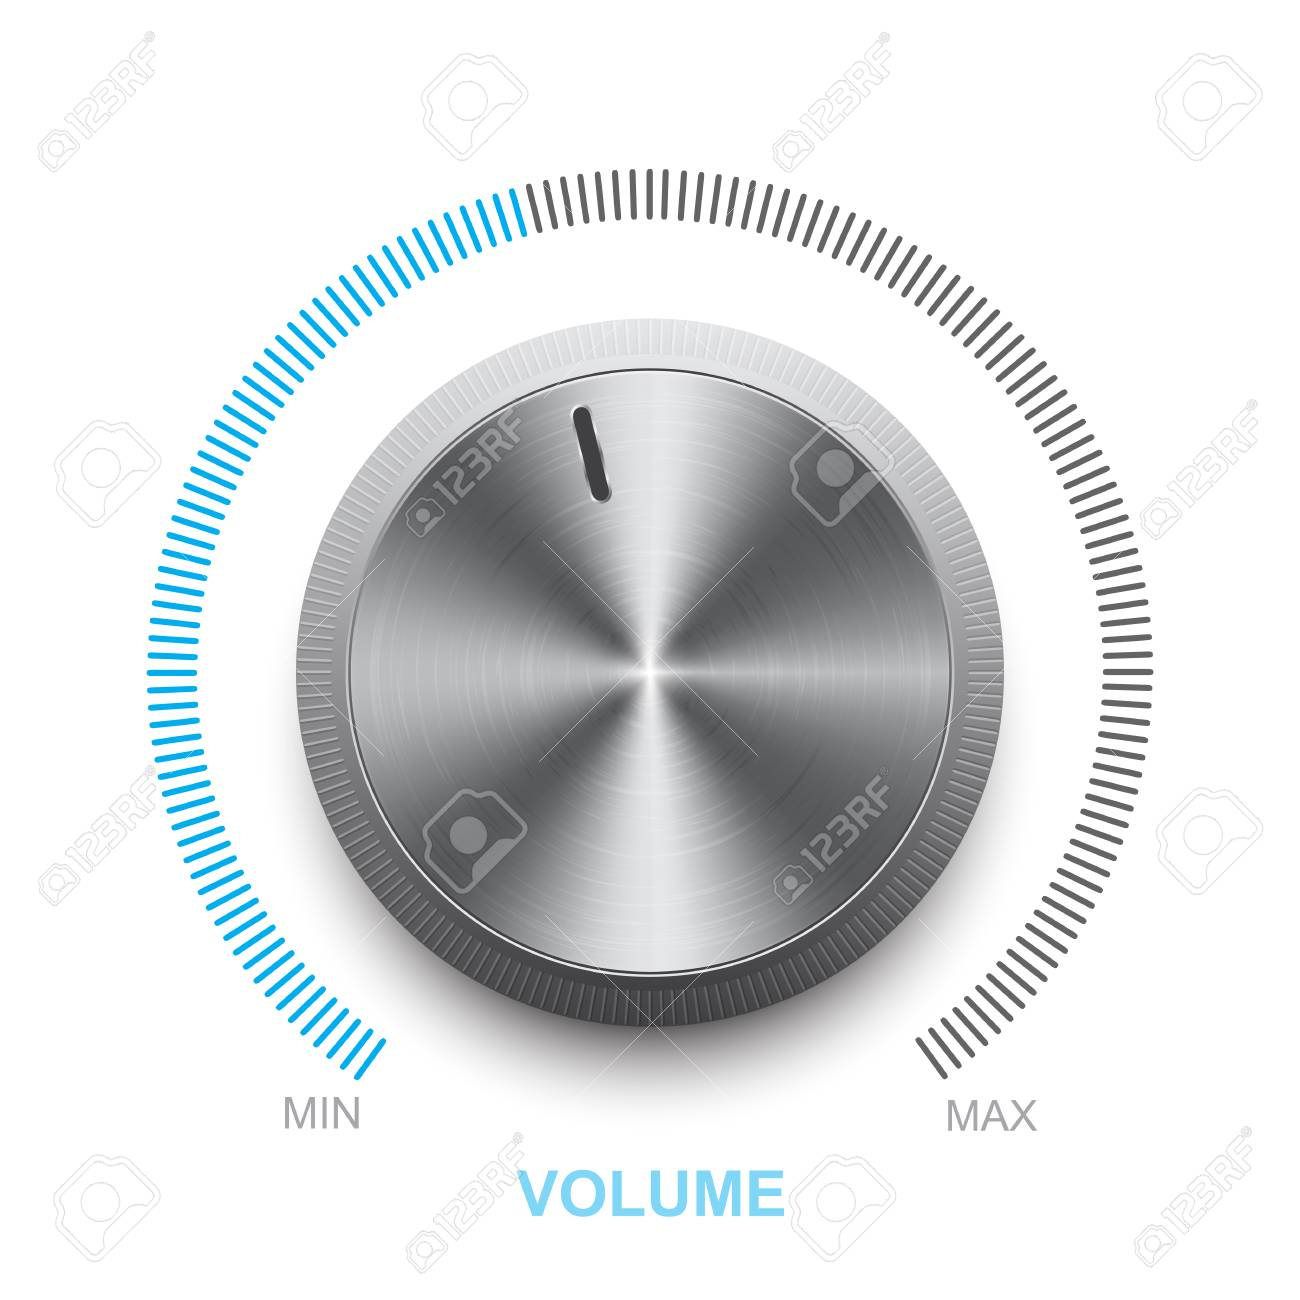 Vector volume control on a white background - 88070649